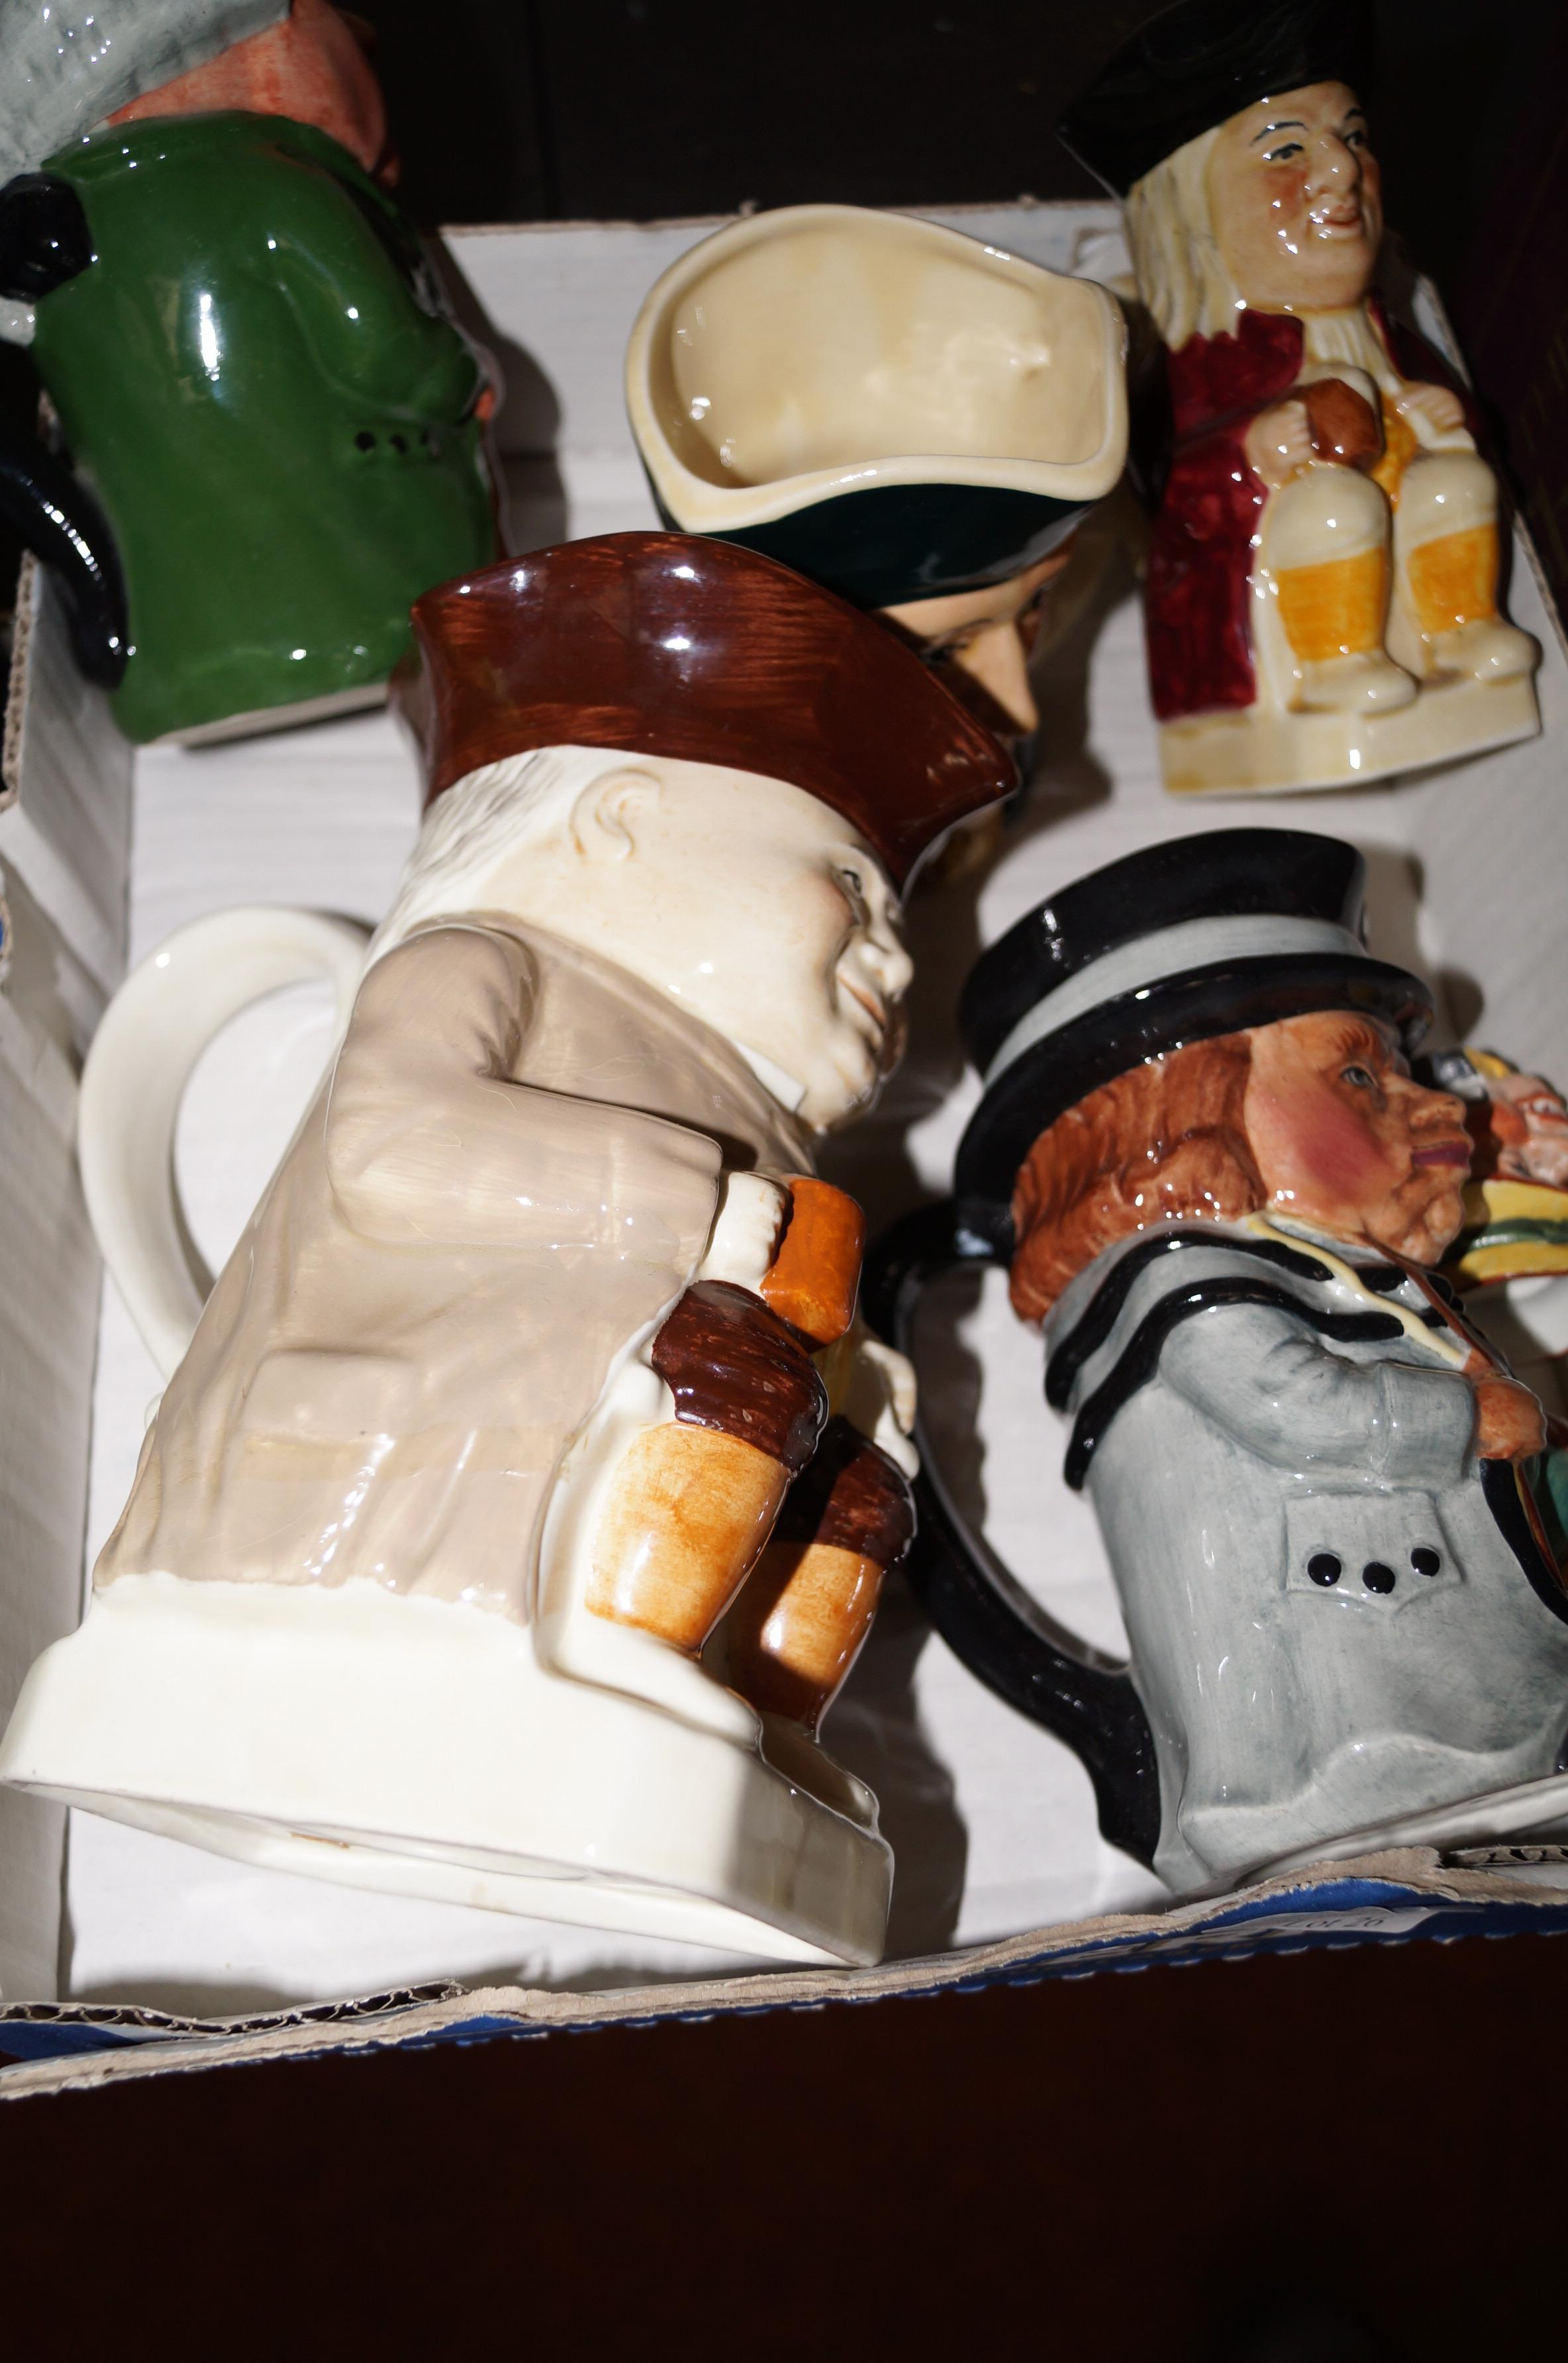 Lot 26 - Collection of Toby jugs